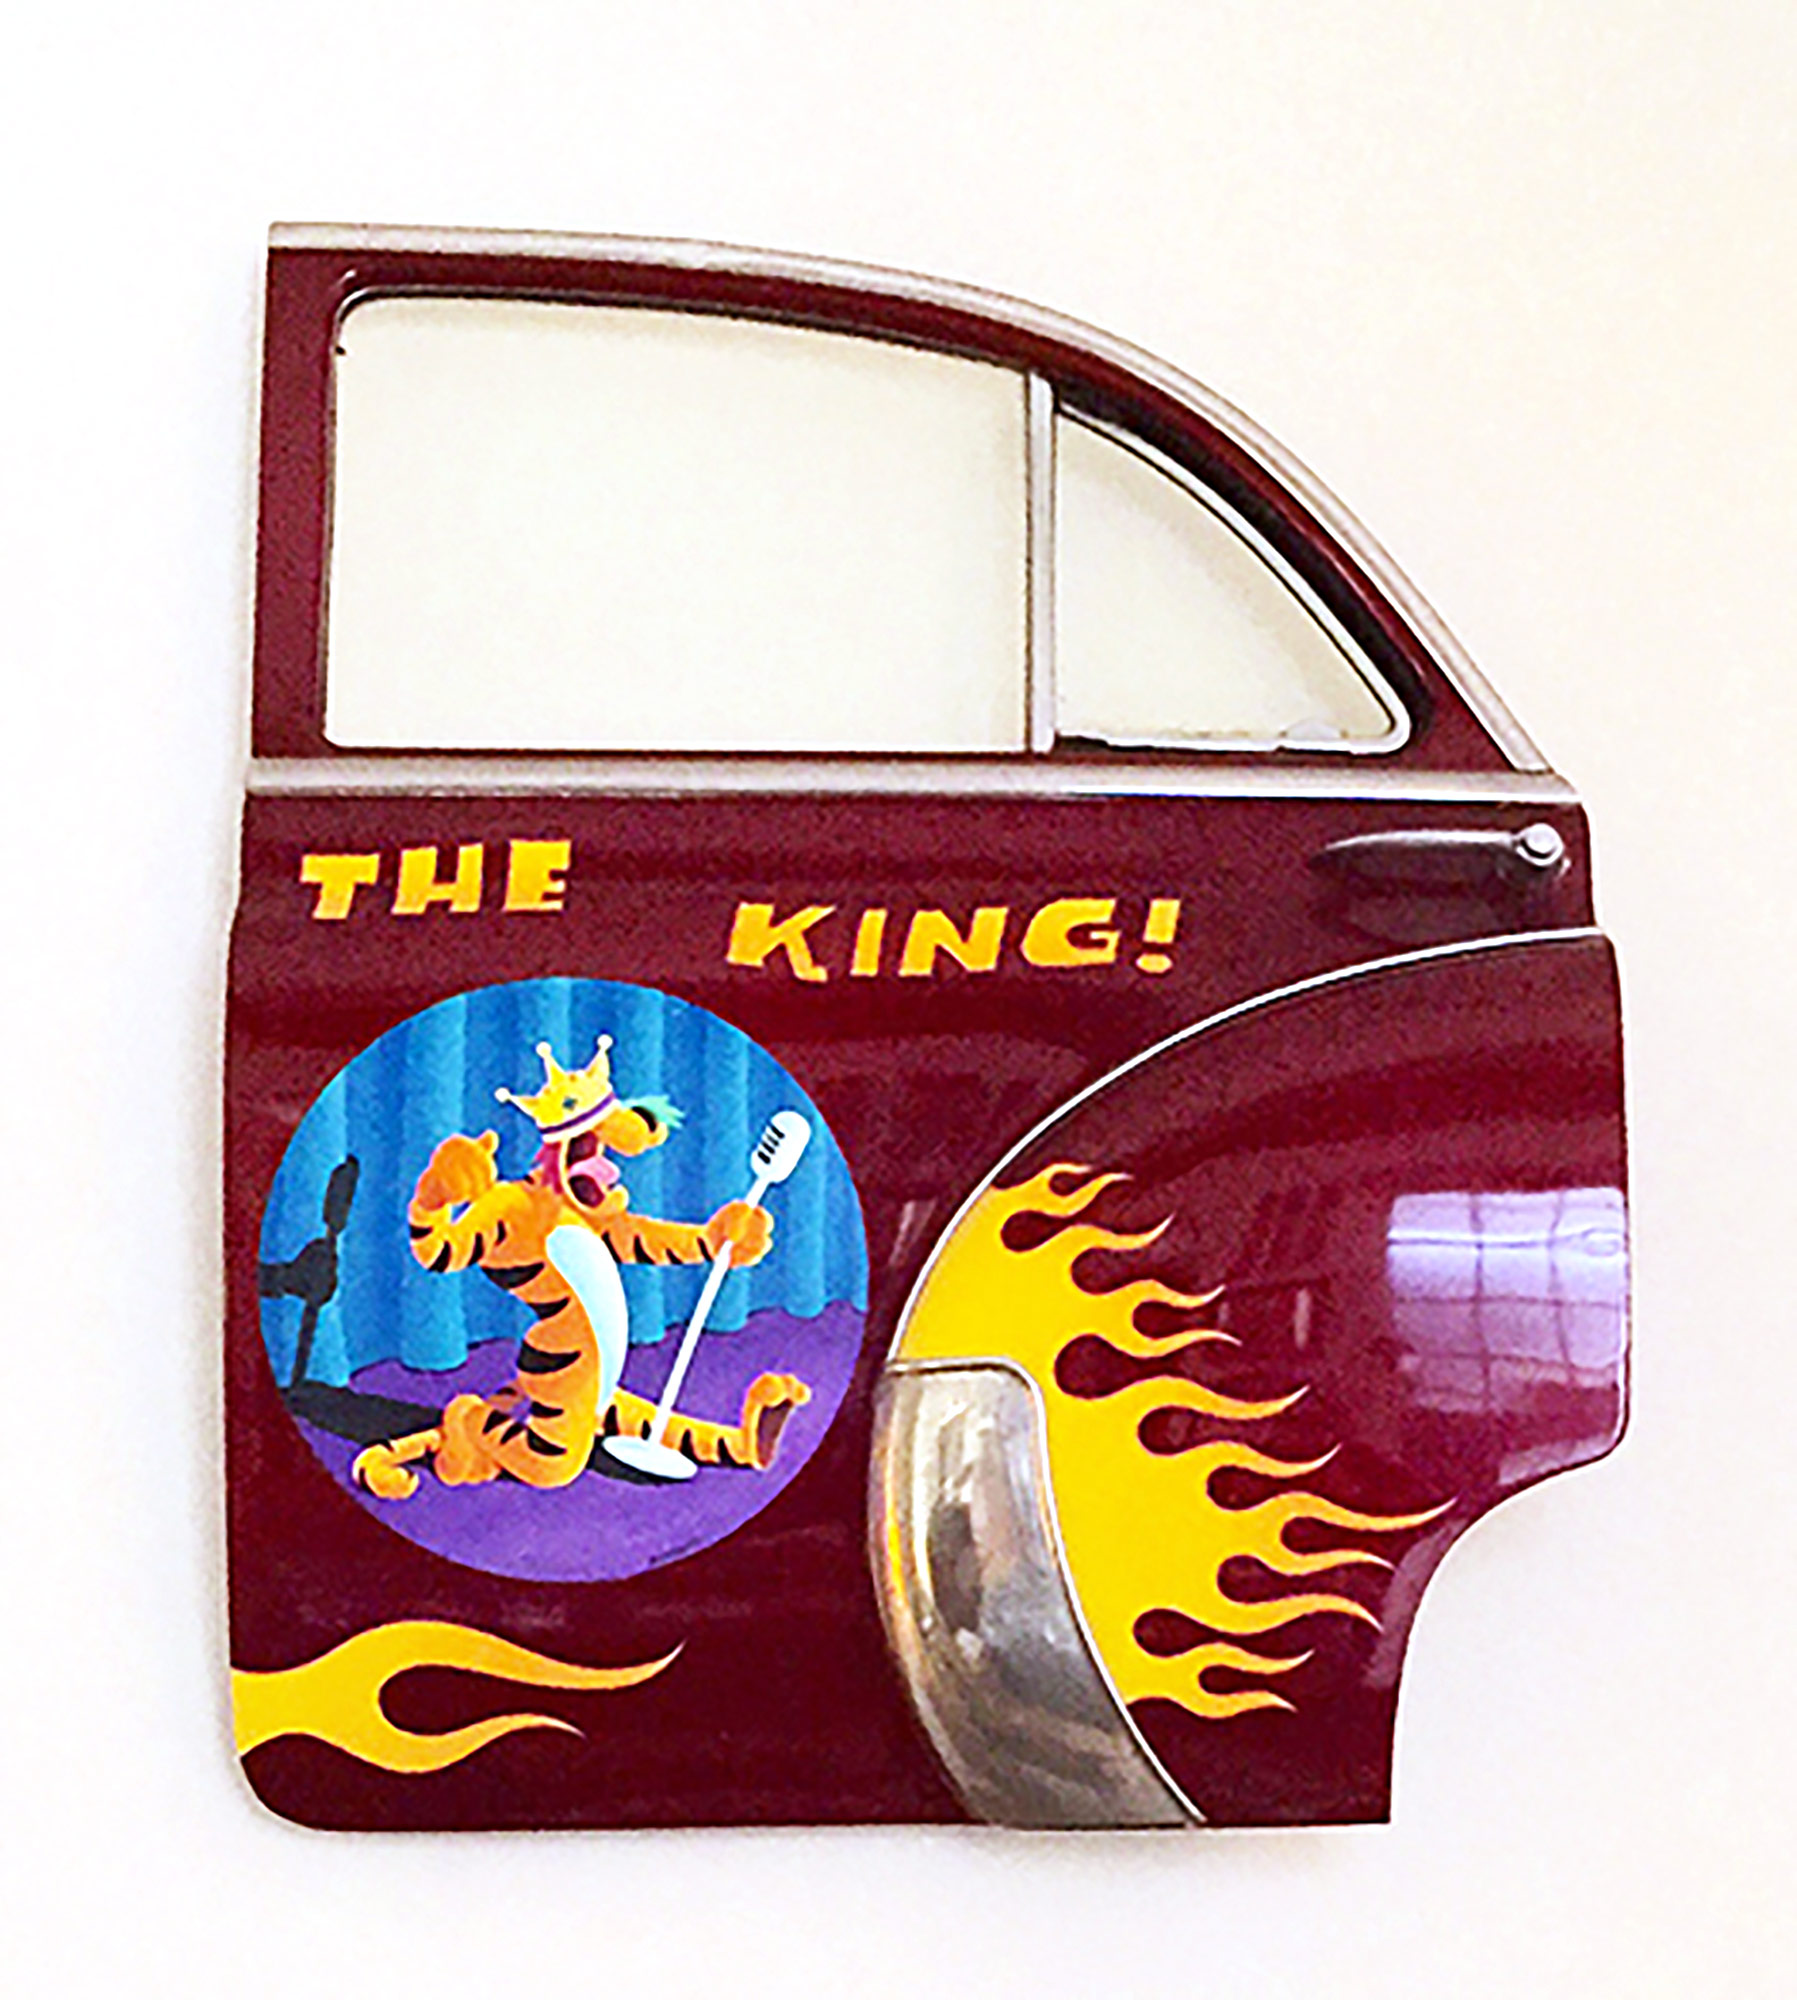 The King, 1997!